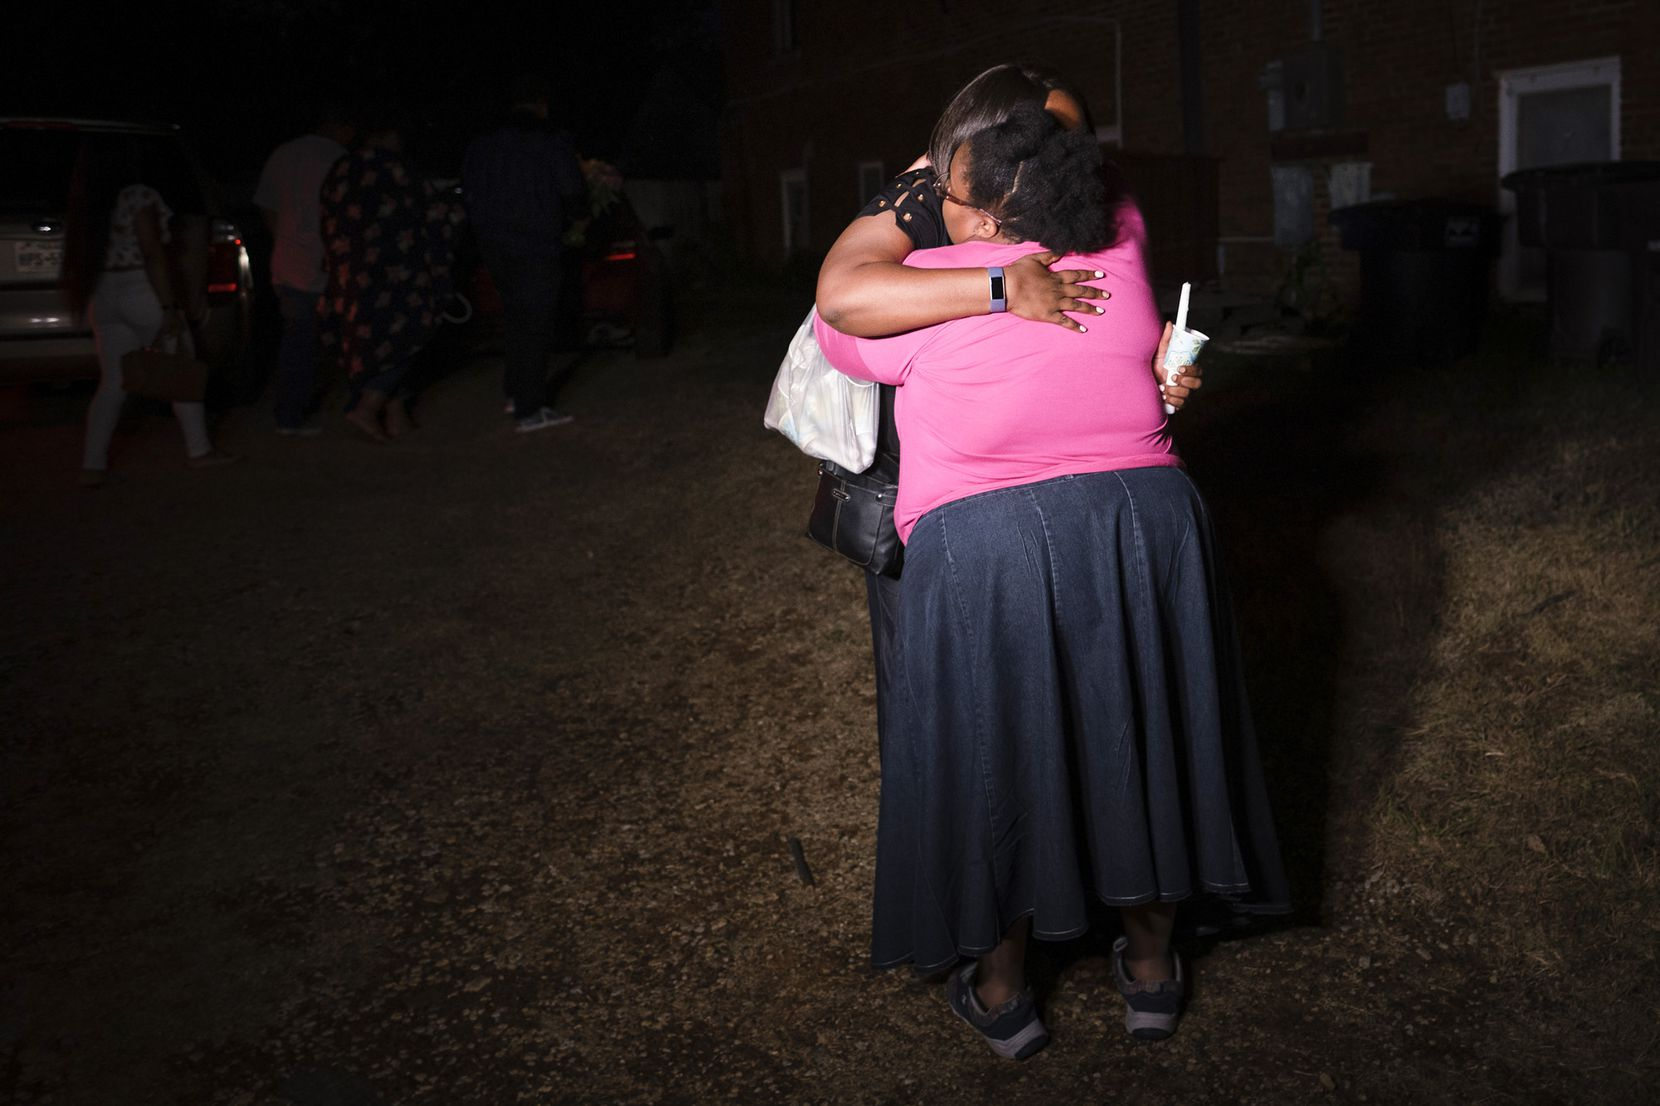 Members of the victimÕs family embrace as they depart a community vigil for Atatiana Jefferson on Sunday, Oct. 13, 2019, in Fort Worth.